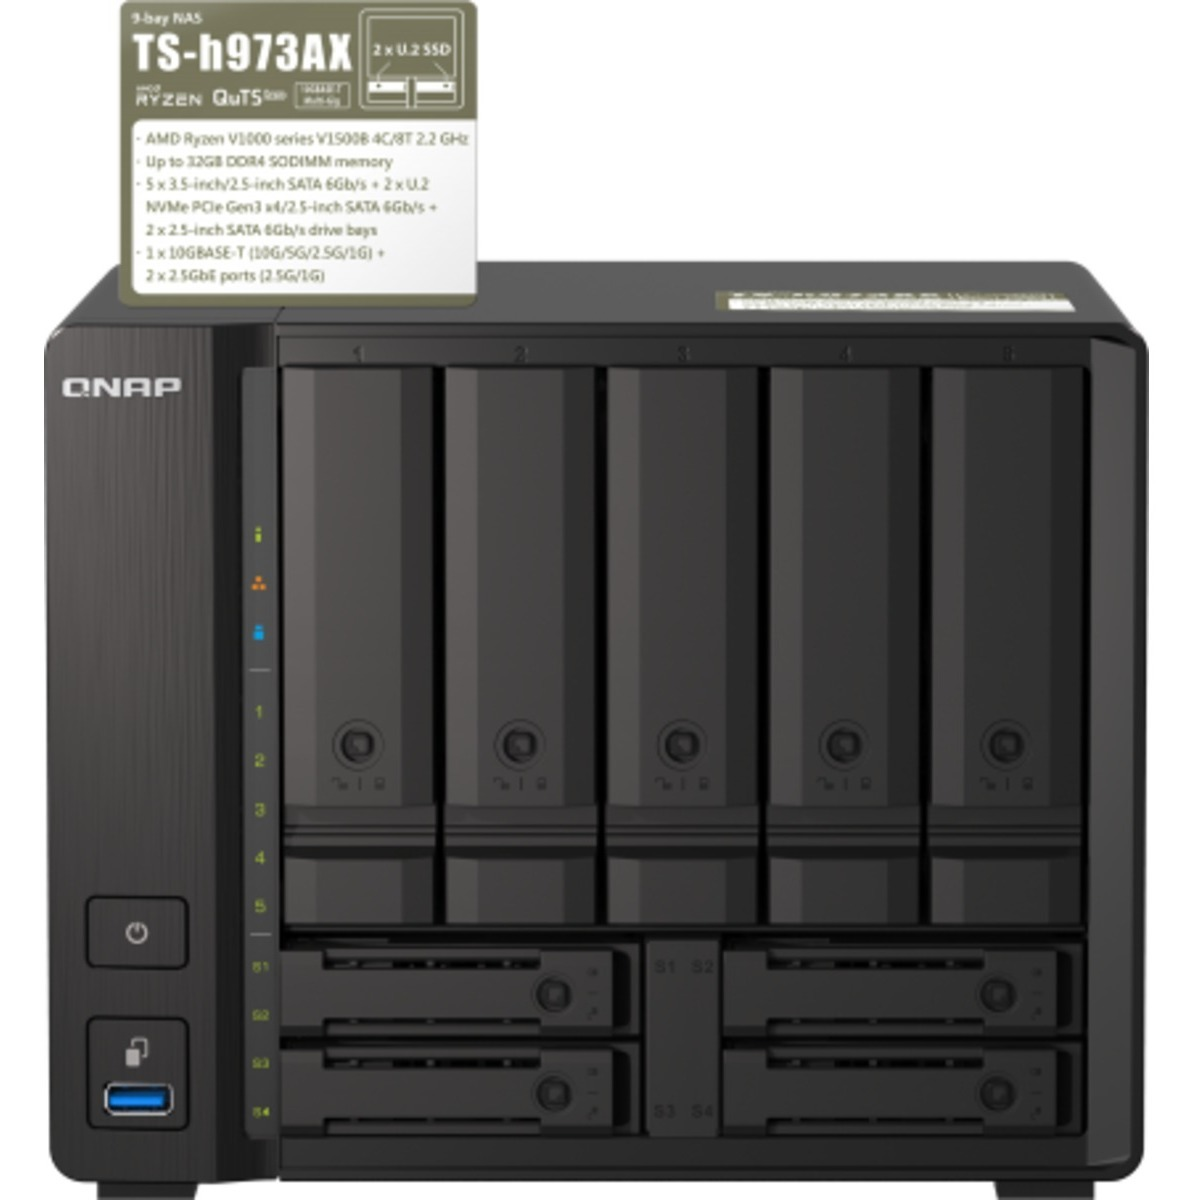 buy $1965 QNAP TS-h973AX  10tb Desktop NAS - Network Attached Storage Device 5x2000gb Crucial MX500 CT2000MX500SSD1 2.5 SATA 6Gb/s SSD CONSUMER Class Drives Installed - Burn-In Tested - ON SALE - nas headquarters buy network attached storage server device das new raid-5 free shipping usa holiday new year clearance sale TS-h973AX